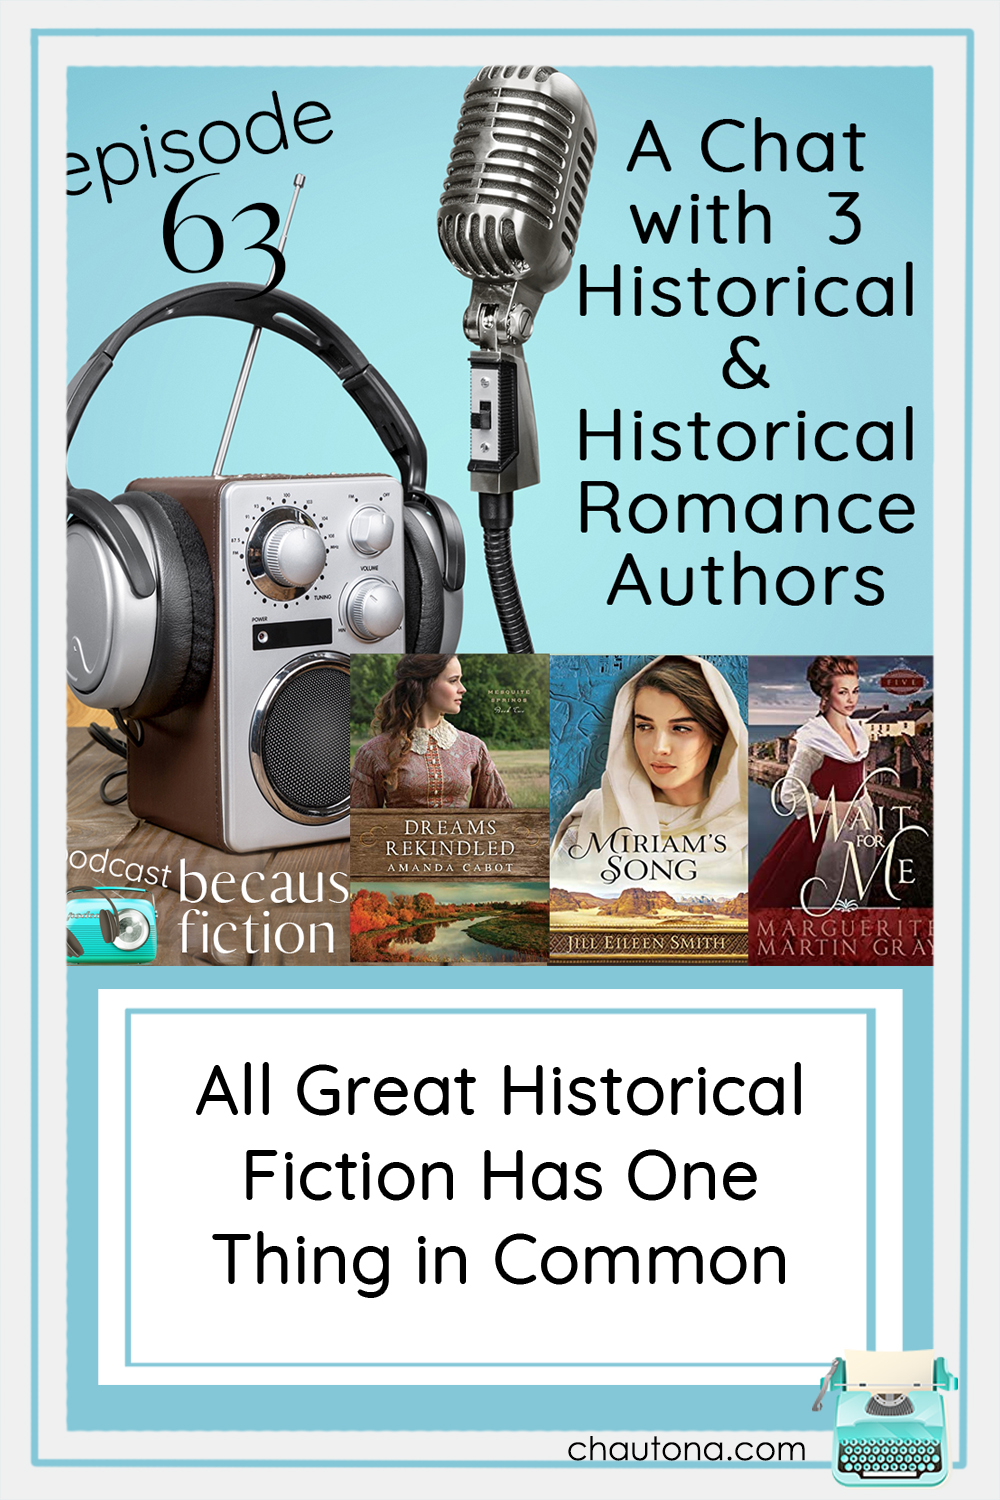 Historical fiction comes from many eras. In today's episode we look at Biblical fiction, the War for Independence, and US antebellum period. via @chautonahavig